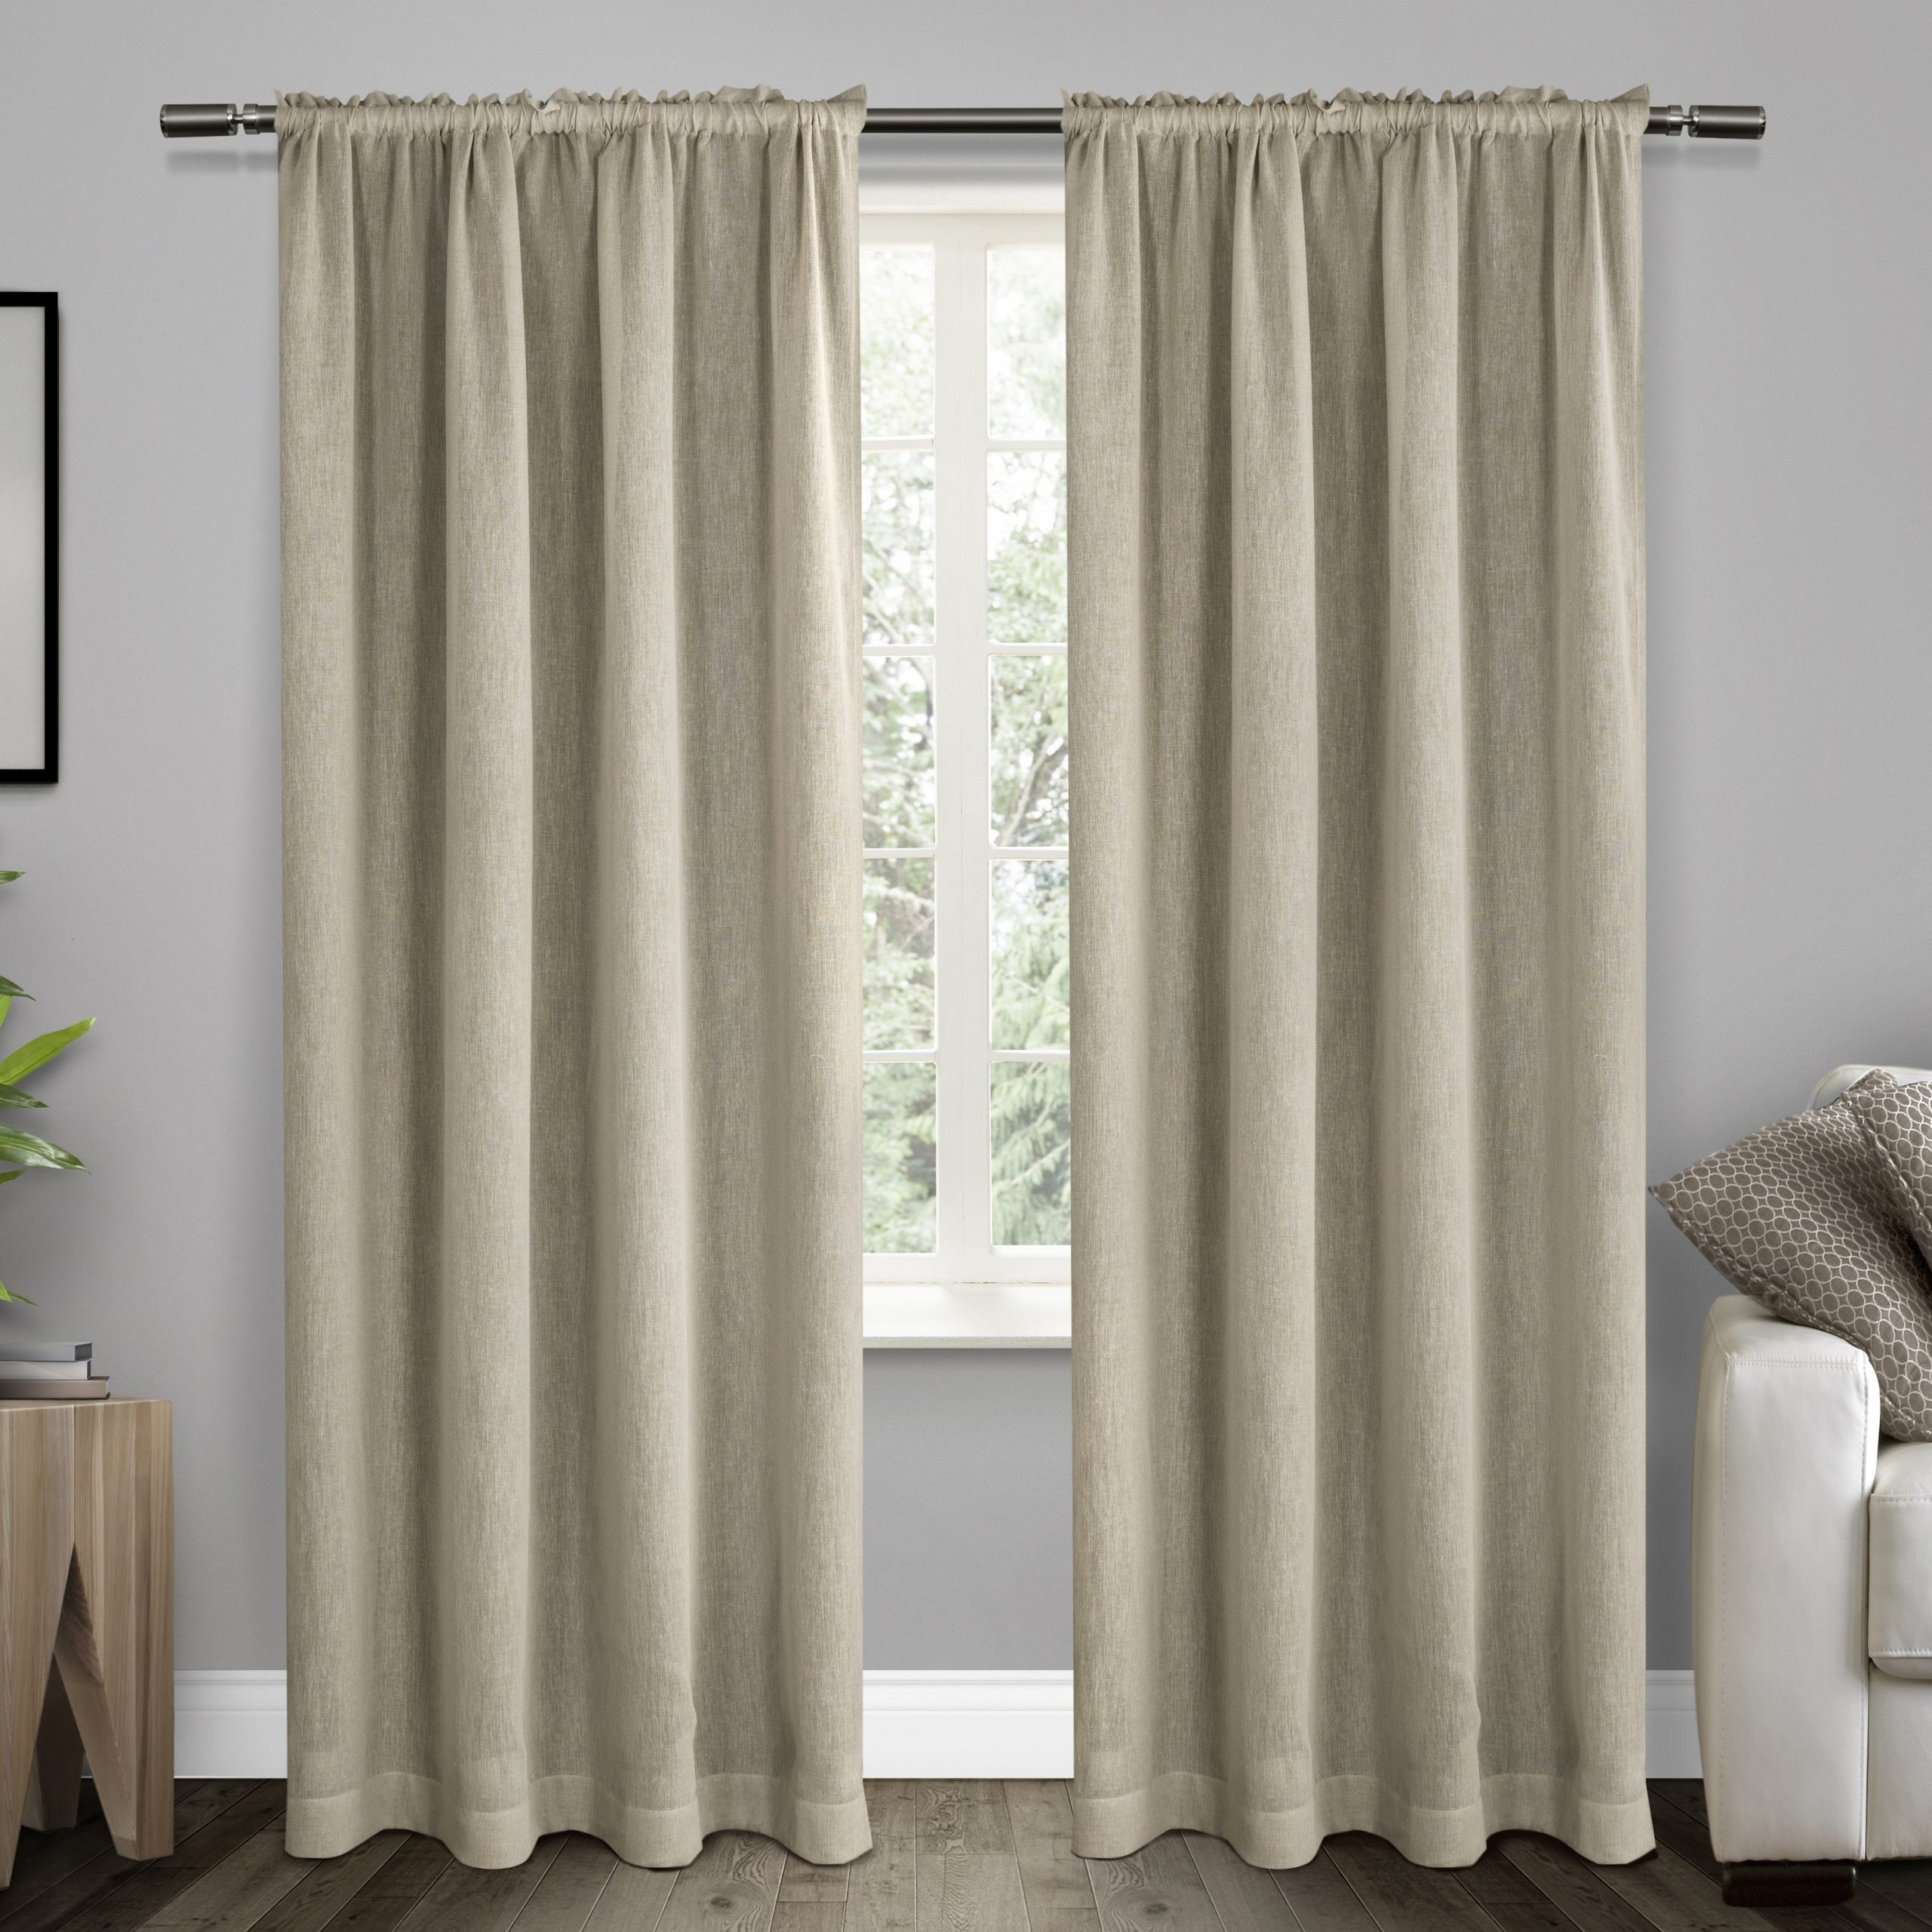 Belgian Sheer Window Curtain Panel Pairs With Rod Pocket Throughout Best And Newest Ati Home Belgian Sheer Window Curtain Panel Pair With Rod Pocket (View 4 of 20)